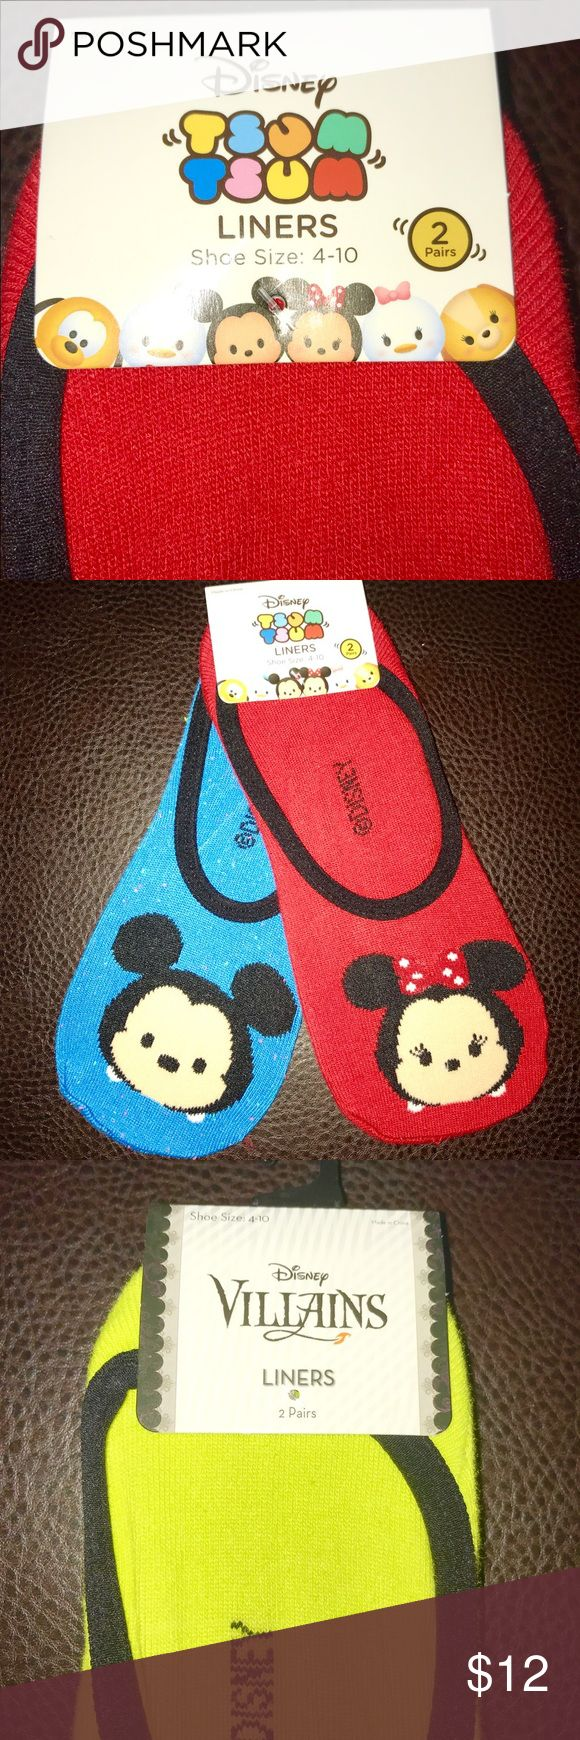 Disney Liner Socks Super cute Disney liner socks. One set of 2 come with Tsum Tsum style Mickey and Mini Mouse. The other set is of the Evil Queen and Malfeasance. $12 EACH or $20 for both. Hot Topic Accessories Hosiery & Socks